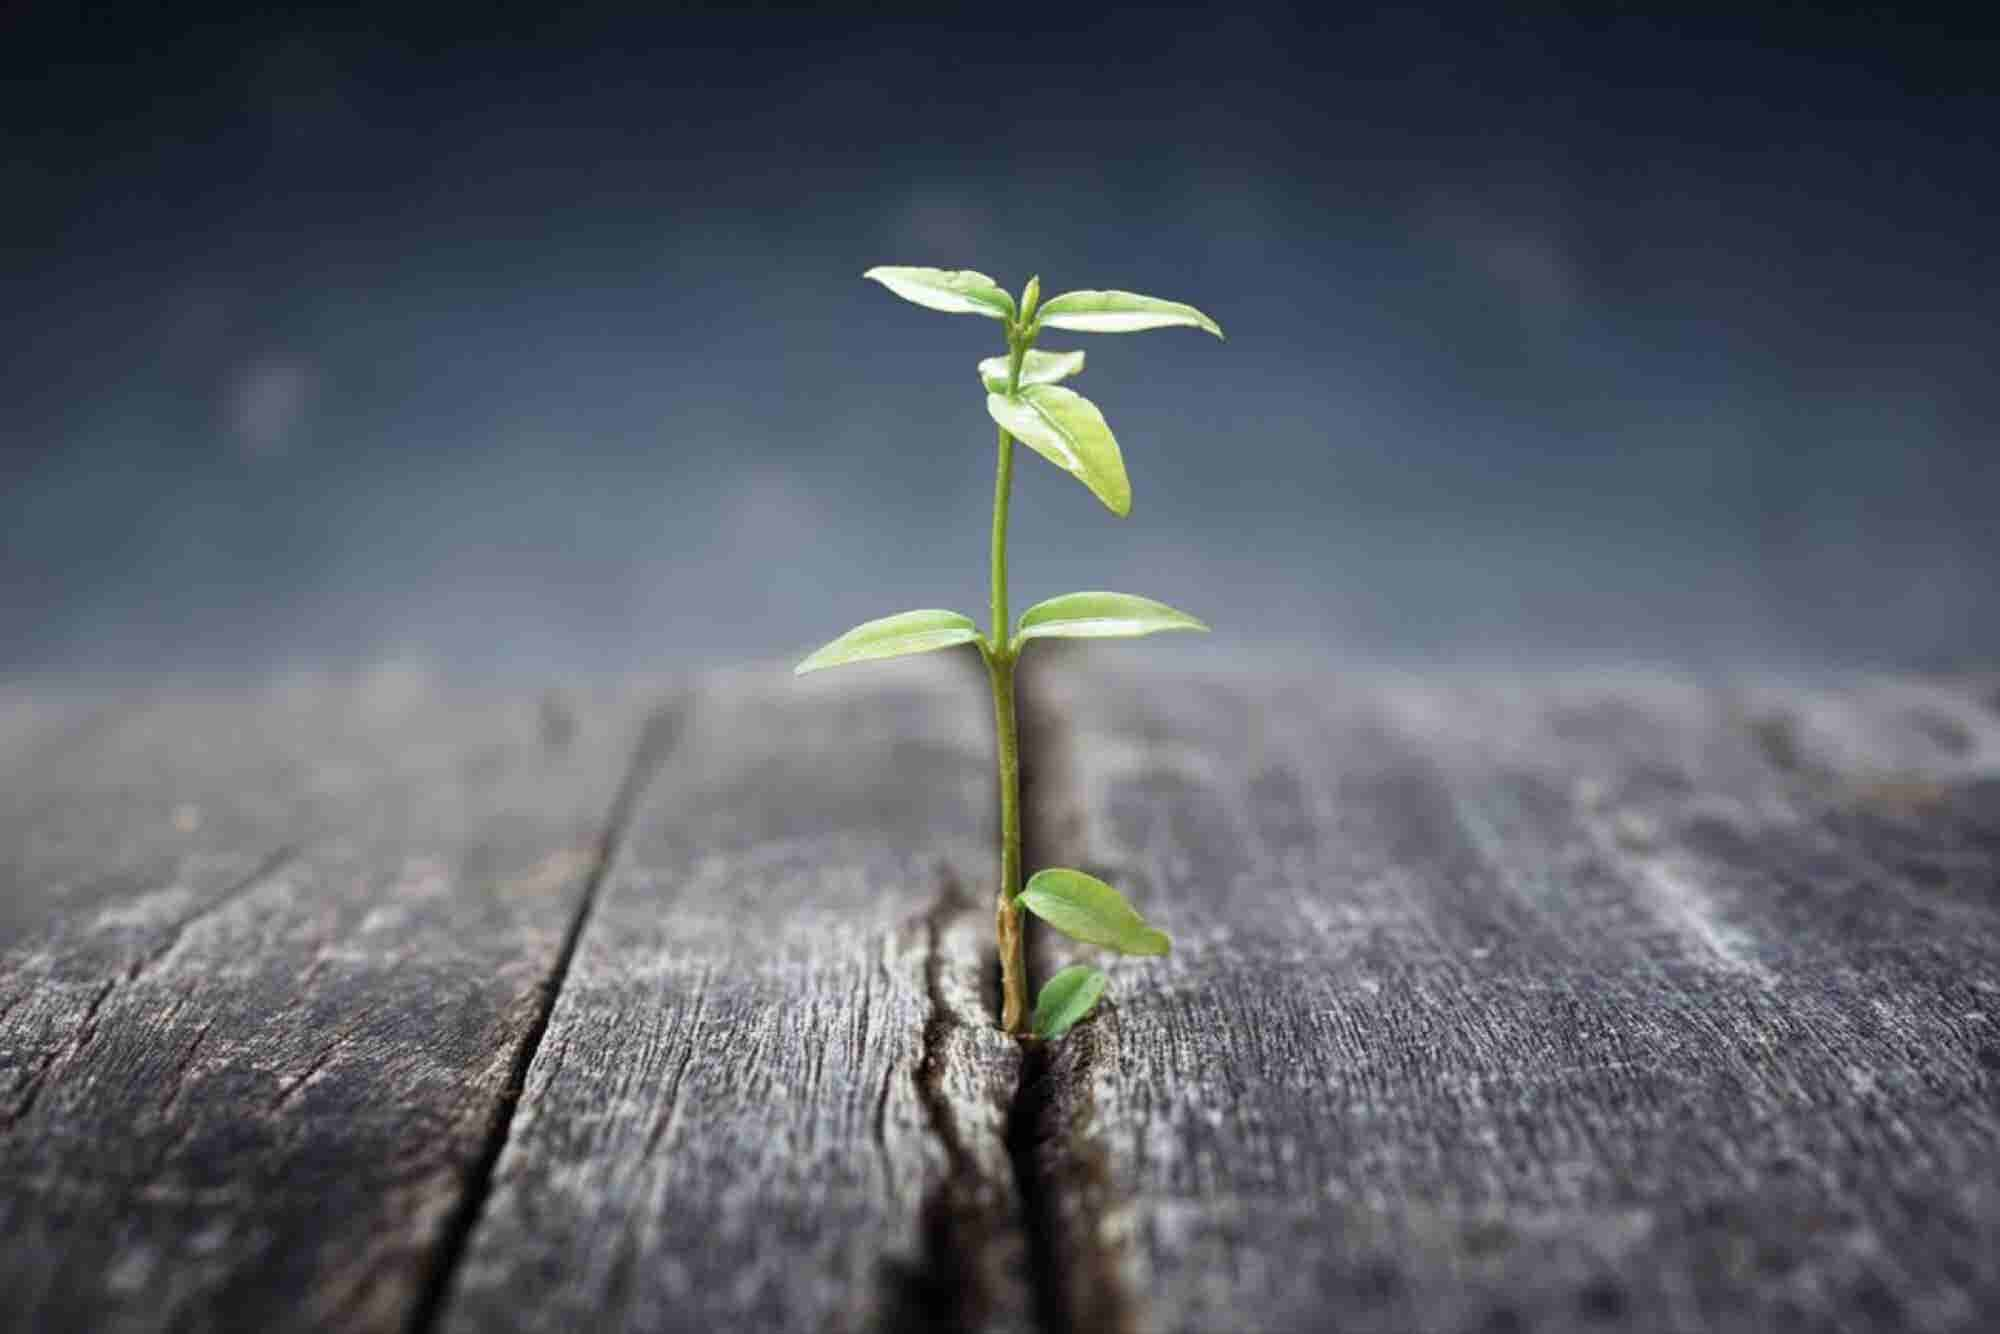 Tips When Raising The Seed: Startup Pitching